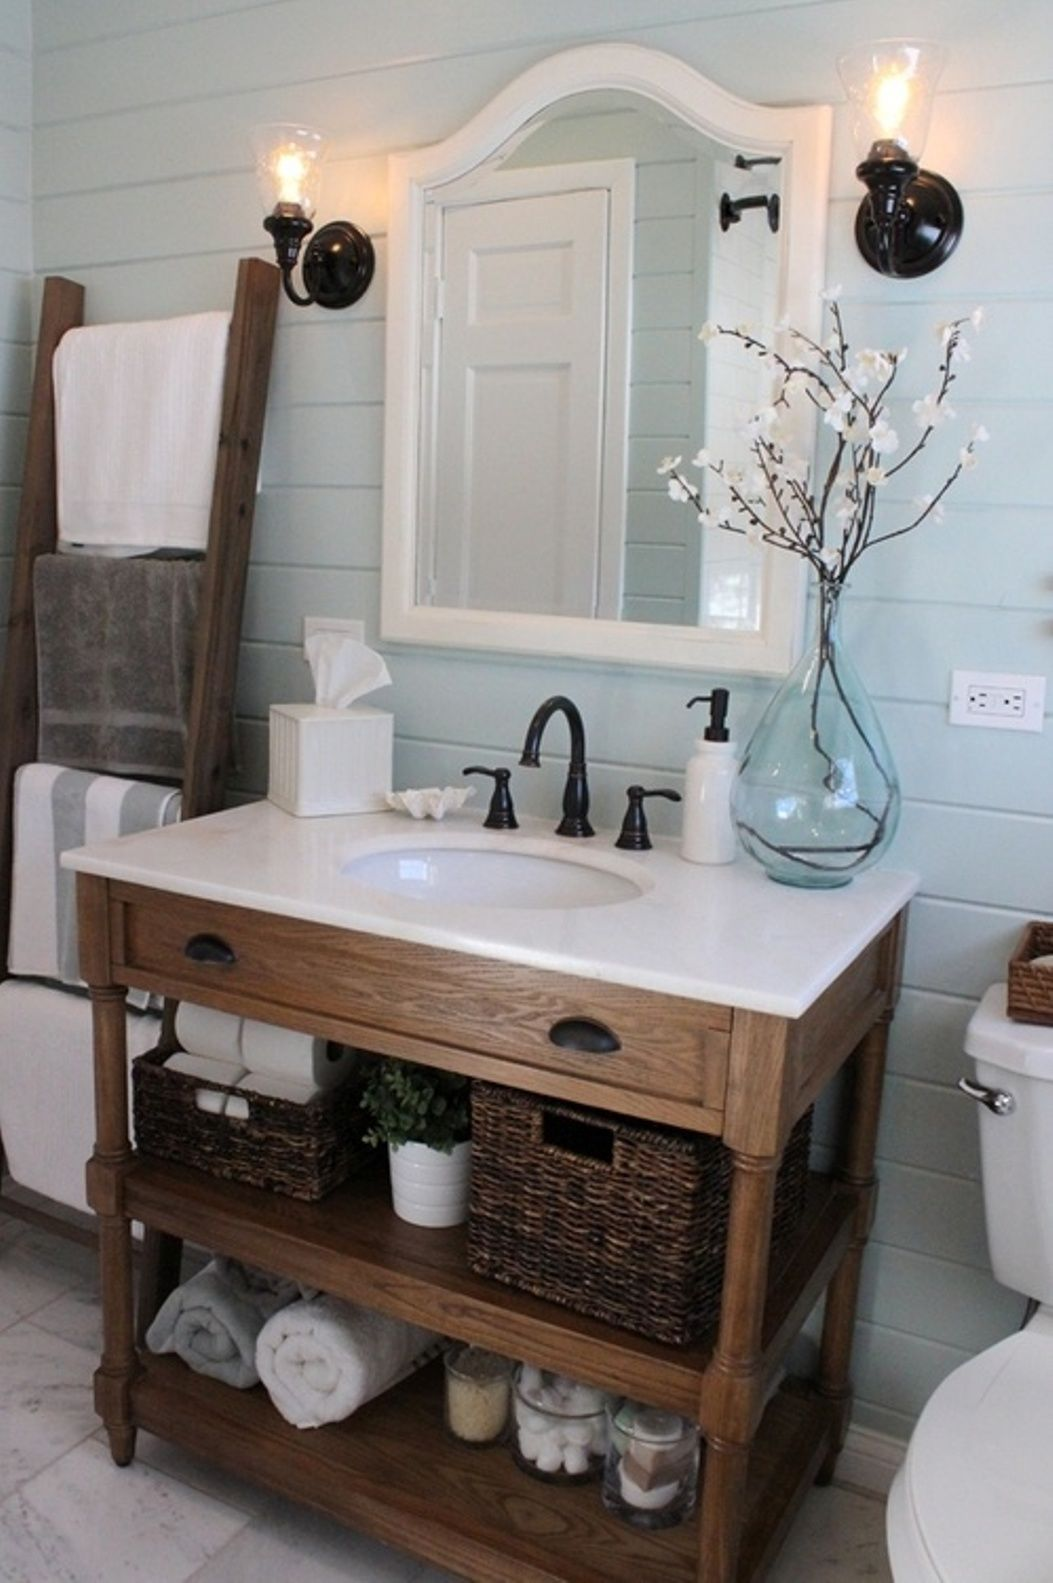 Cheap Farmhouse Decor Saleprice 32 Home Decor Inspiration Modern Farmhouse Bathroom